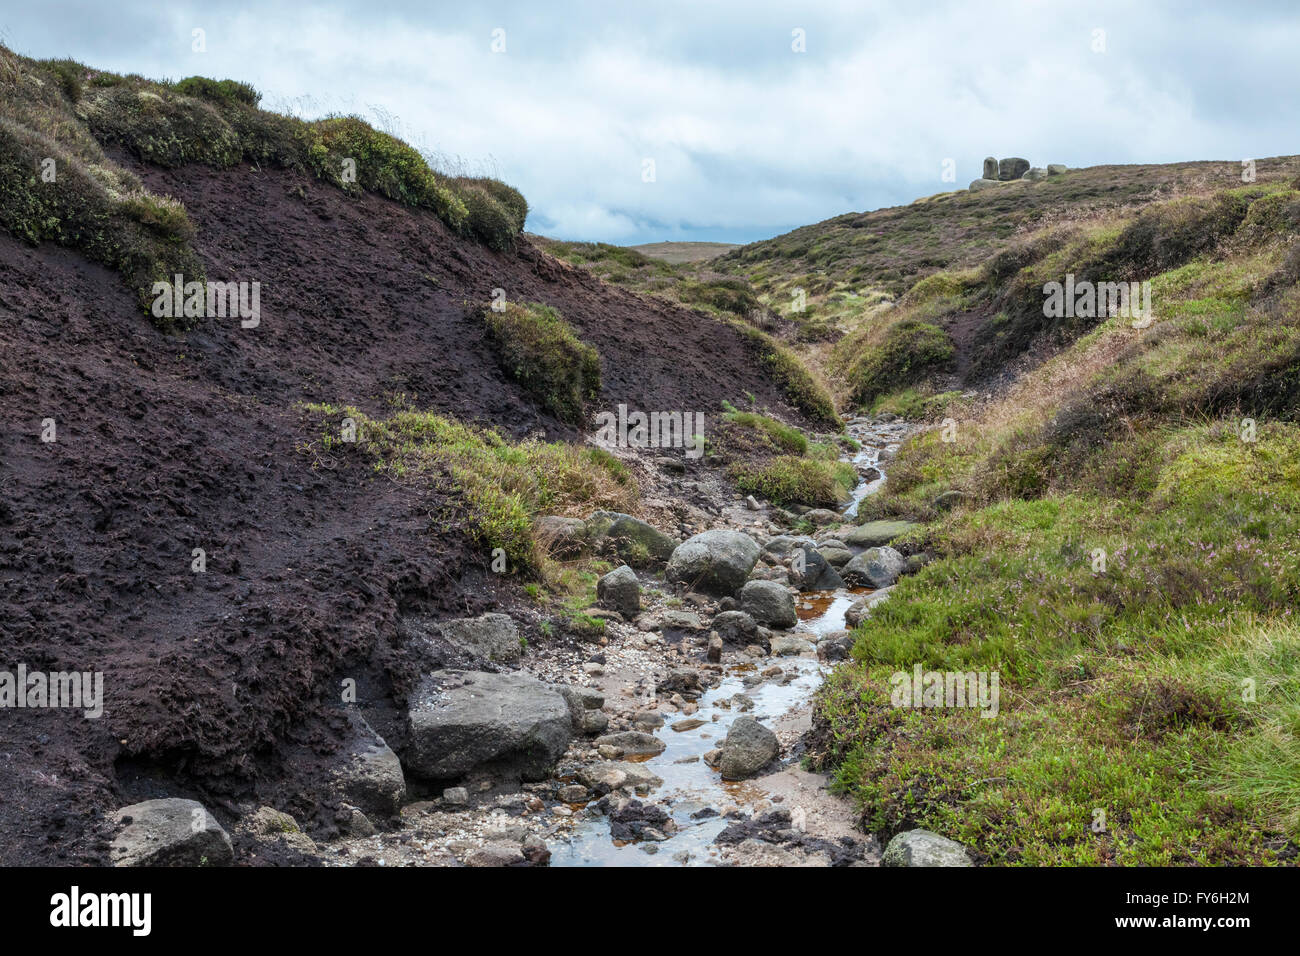 A gulley on Kinder Scout, Derbyshire, Peak District National Park, England, UK, with bad weather approaching - Stock Image